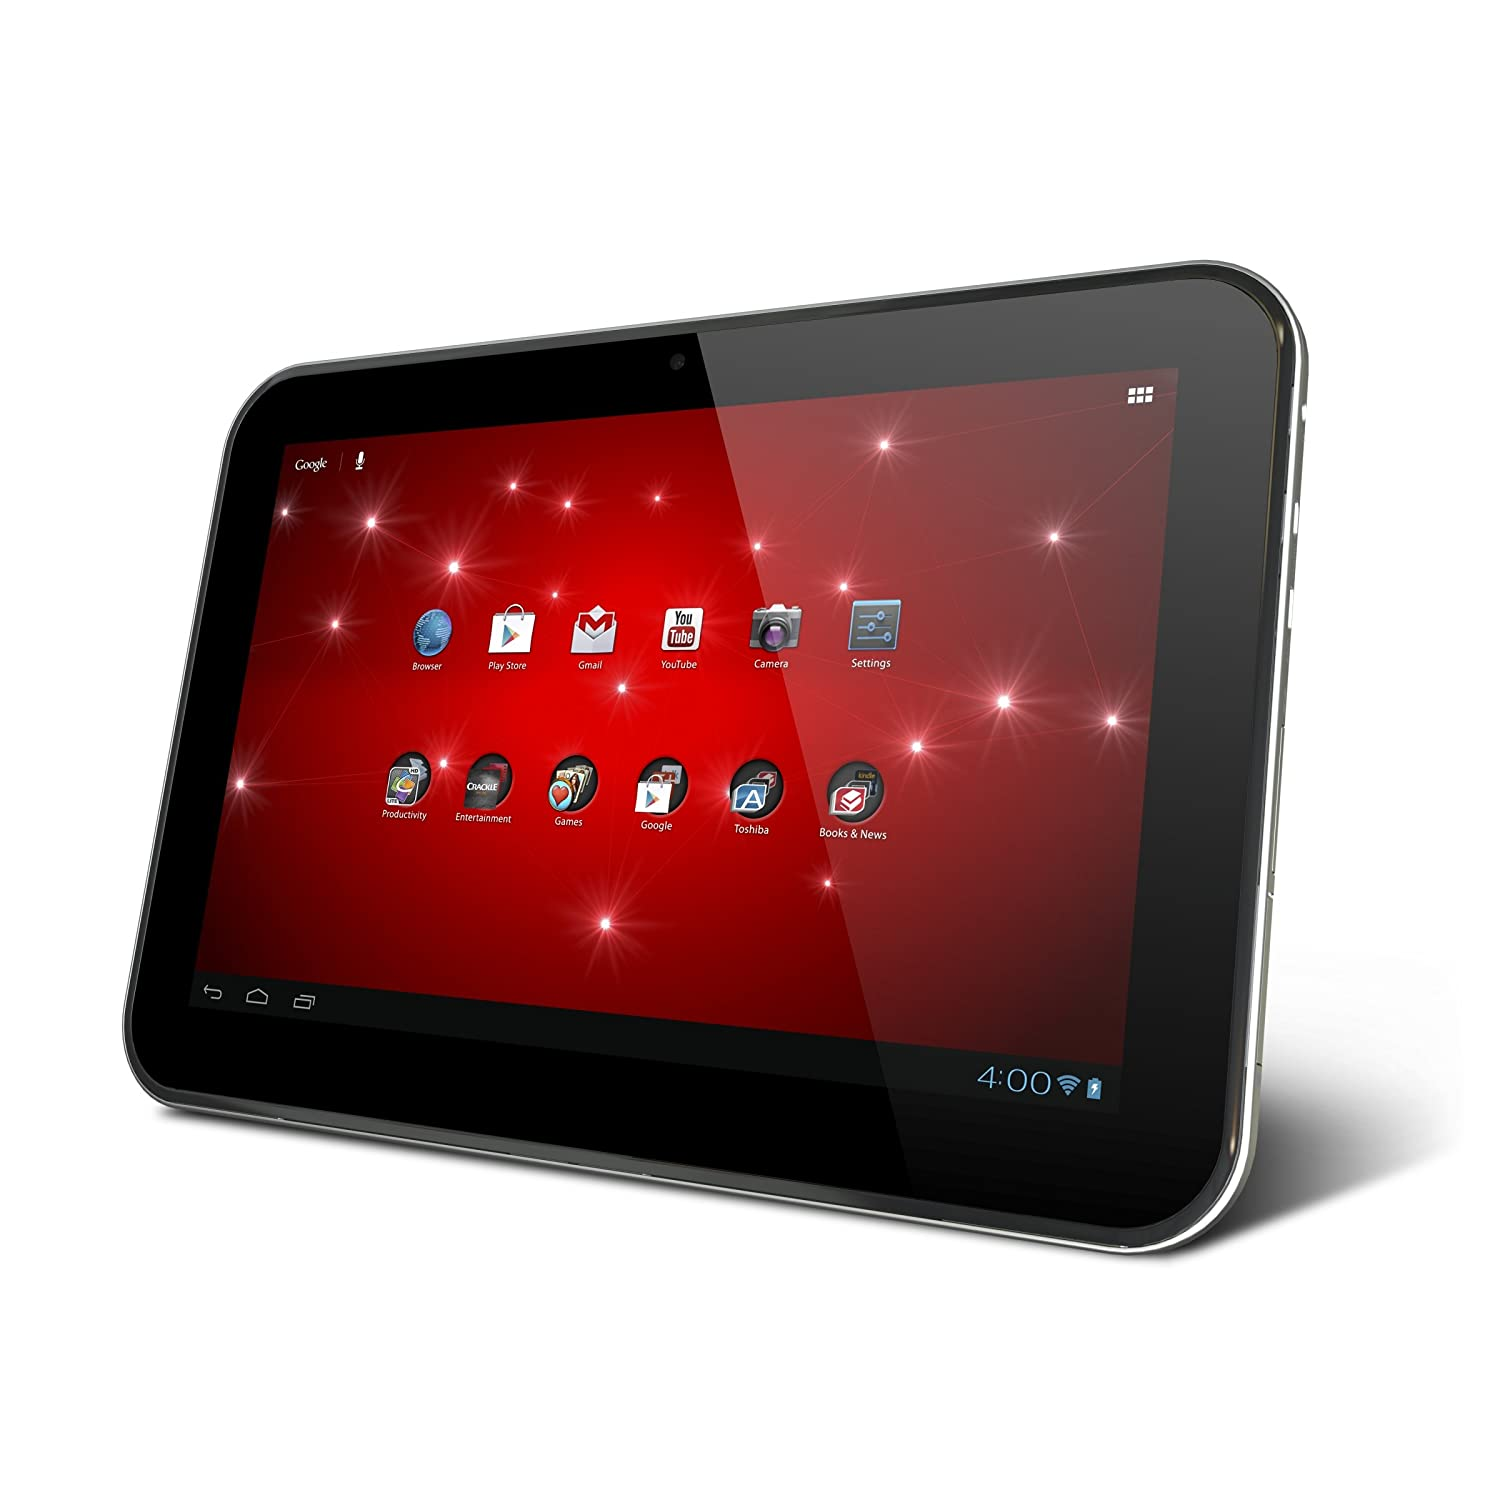 Amazon.com: Toshiba Excite AT305T16 10.1-Inch 16 GB Tablet Computer